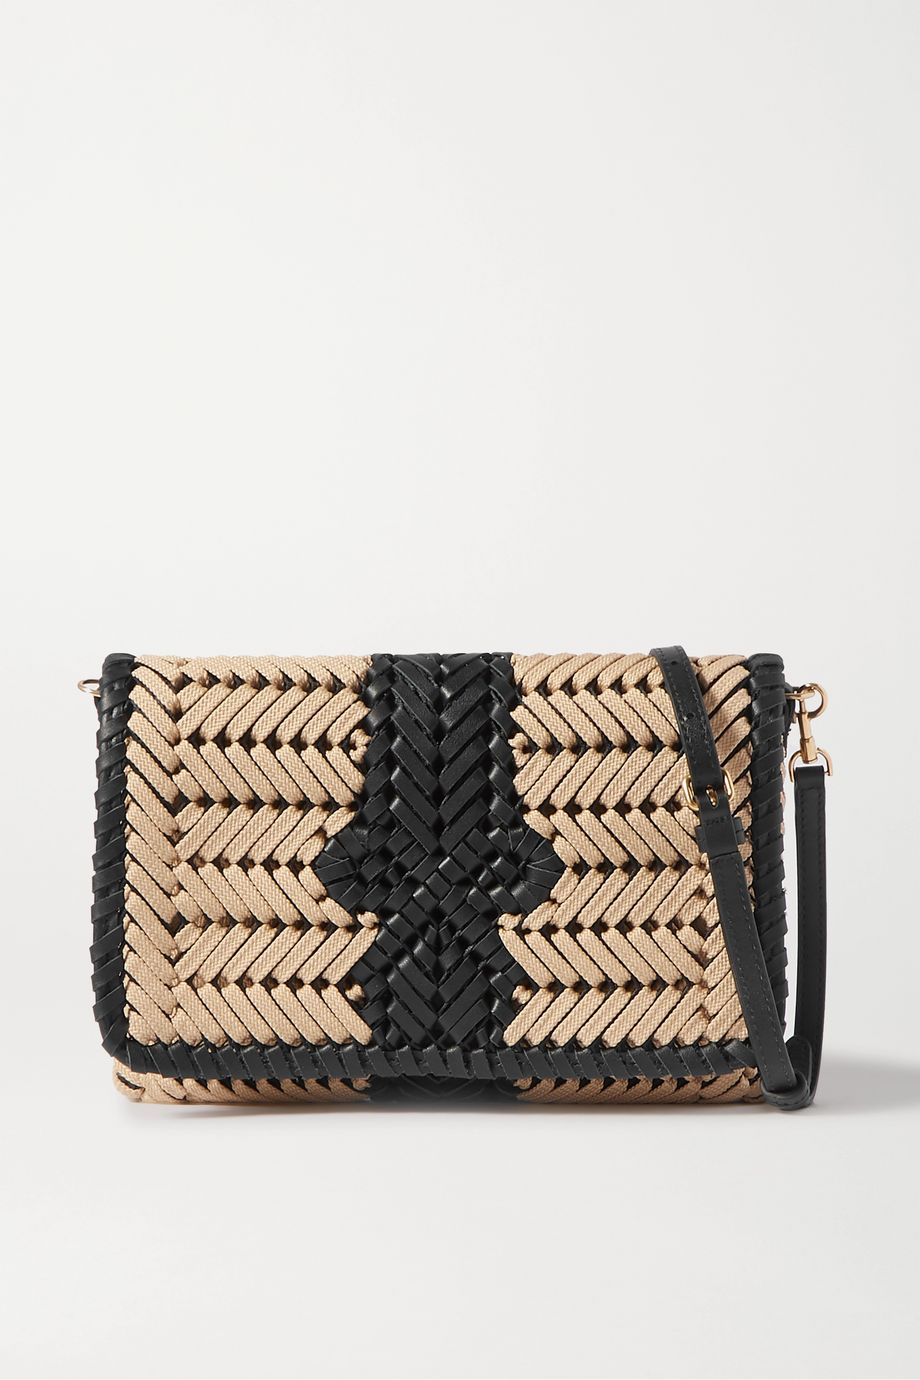 Anya Hindmarch Neeson woven leather-trimmed rope shoulder bag